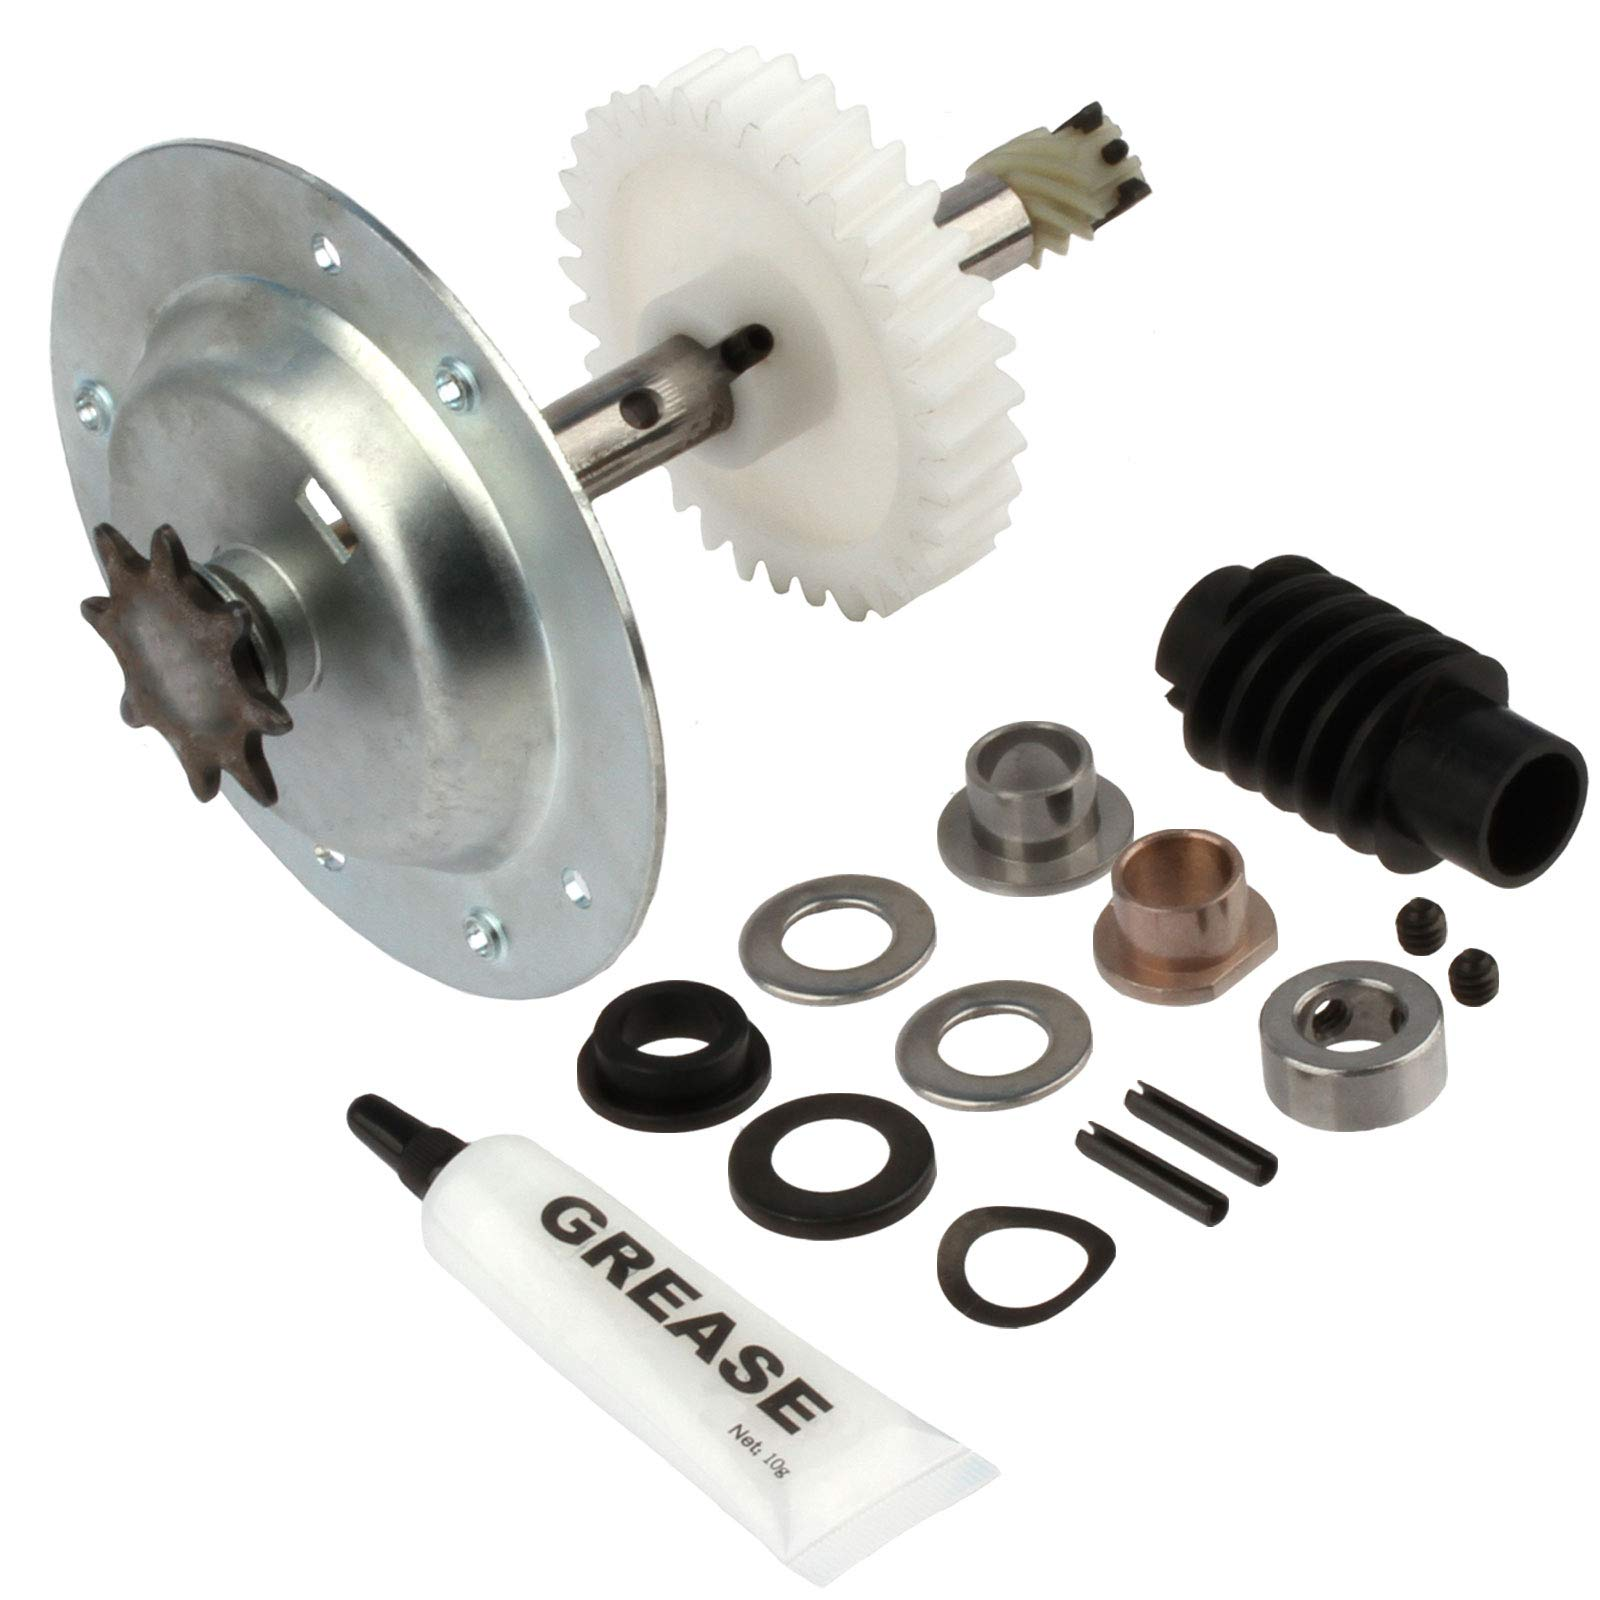 Replacement for Liftmaster 41c4220a Gear and Sprocket Kit fits Chamberlain, Sears, Craftsman 1/3 and 1/2 HP Chain Drive Models by TCK TECH